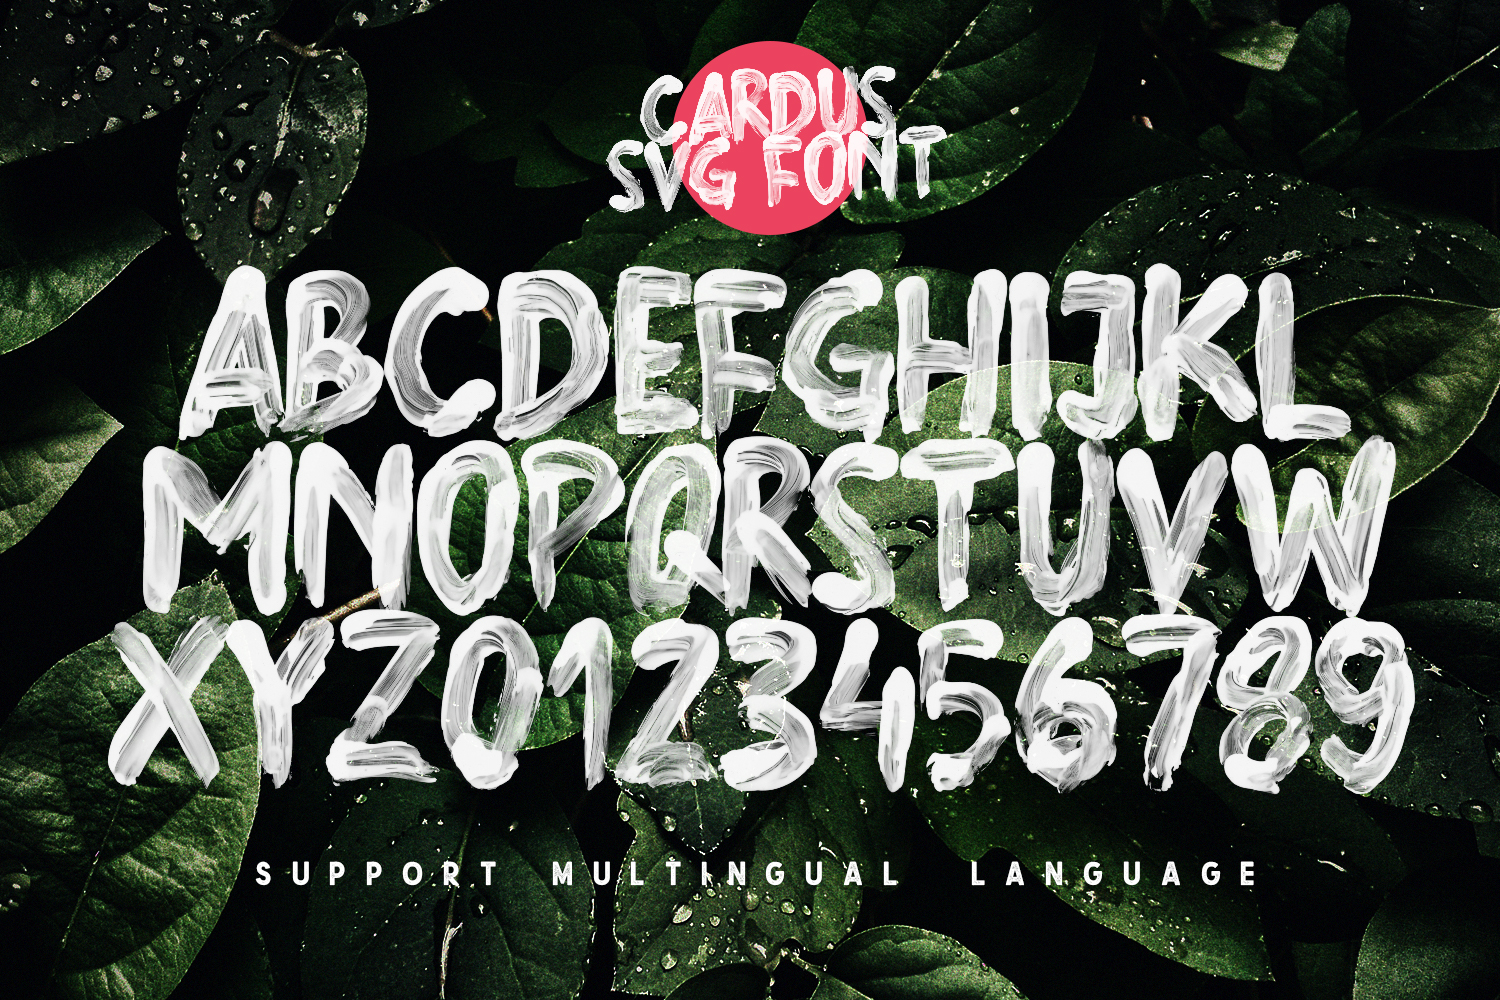 Cardus Brush SVG Font example image 6